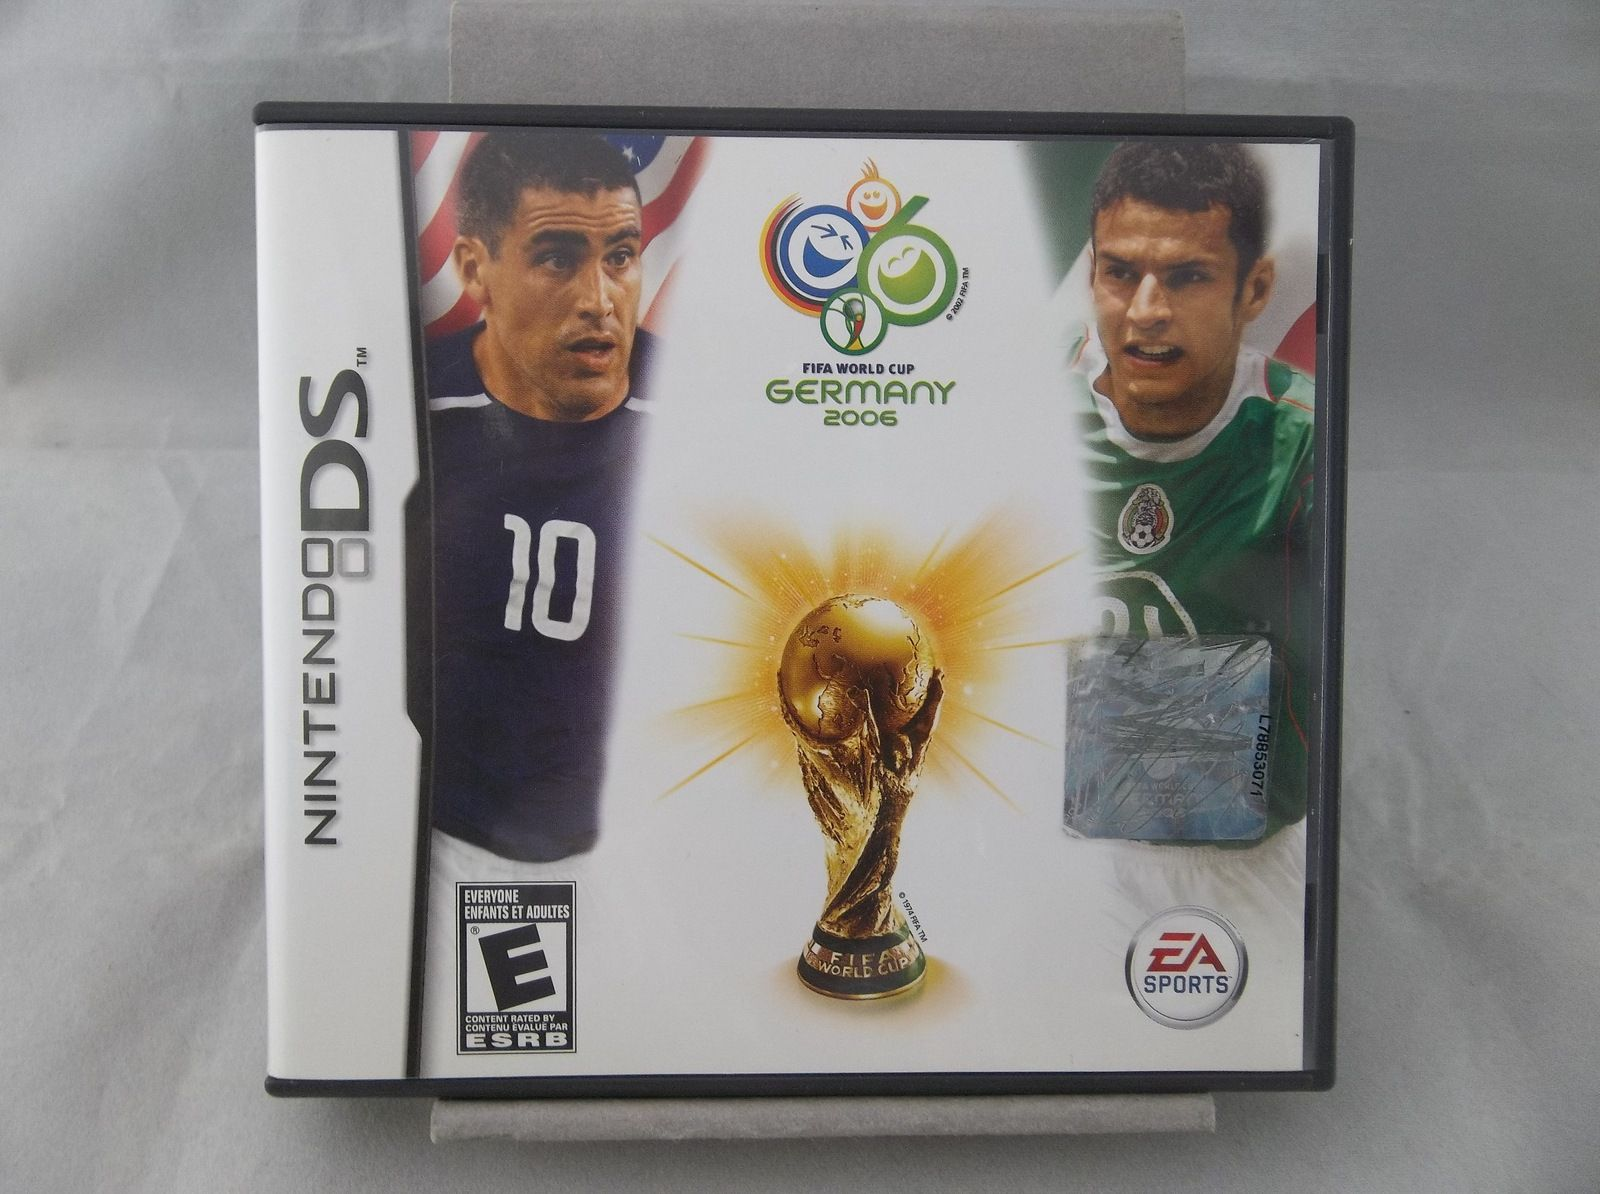 Ea Sports Fifa World Cup Germany 2006 Nintendo Ds Dsl Dsi Video Game Fifa Worldcup Germany Soccer Football Nintendo Ds Ea Sports Fifa Nintendo Ds Fifa